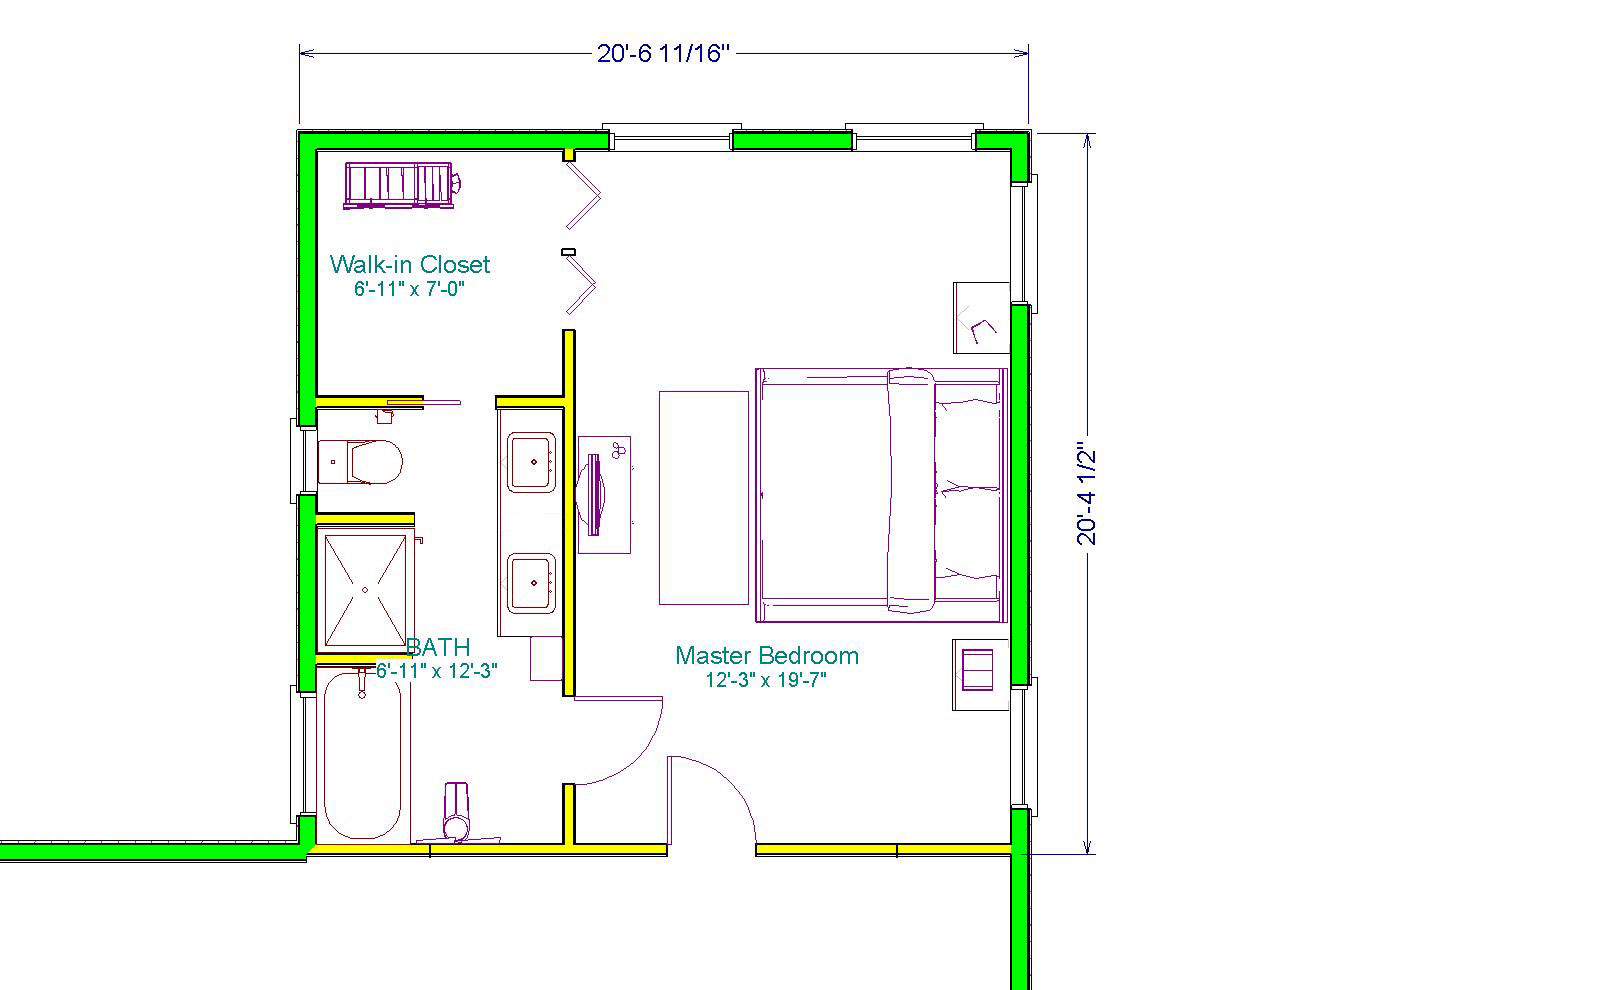 The executive master suite 400sq ft extensions simply additions Master bedroom plan dwg